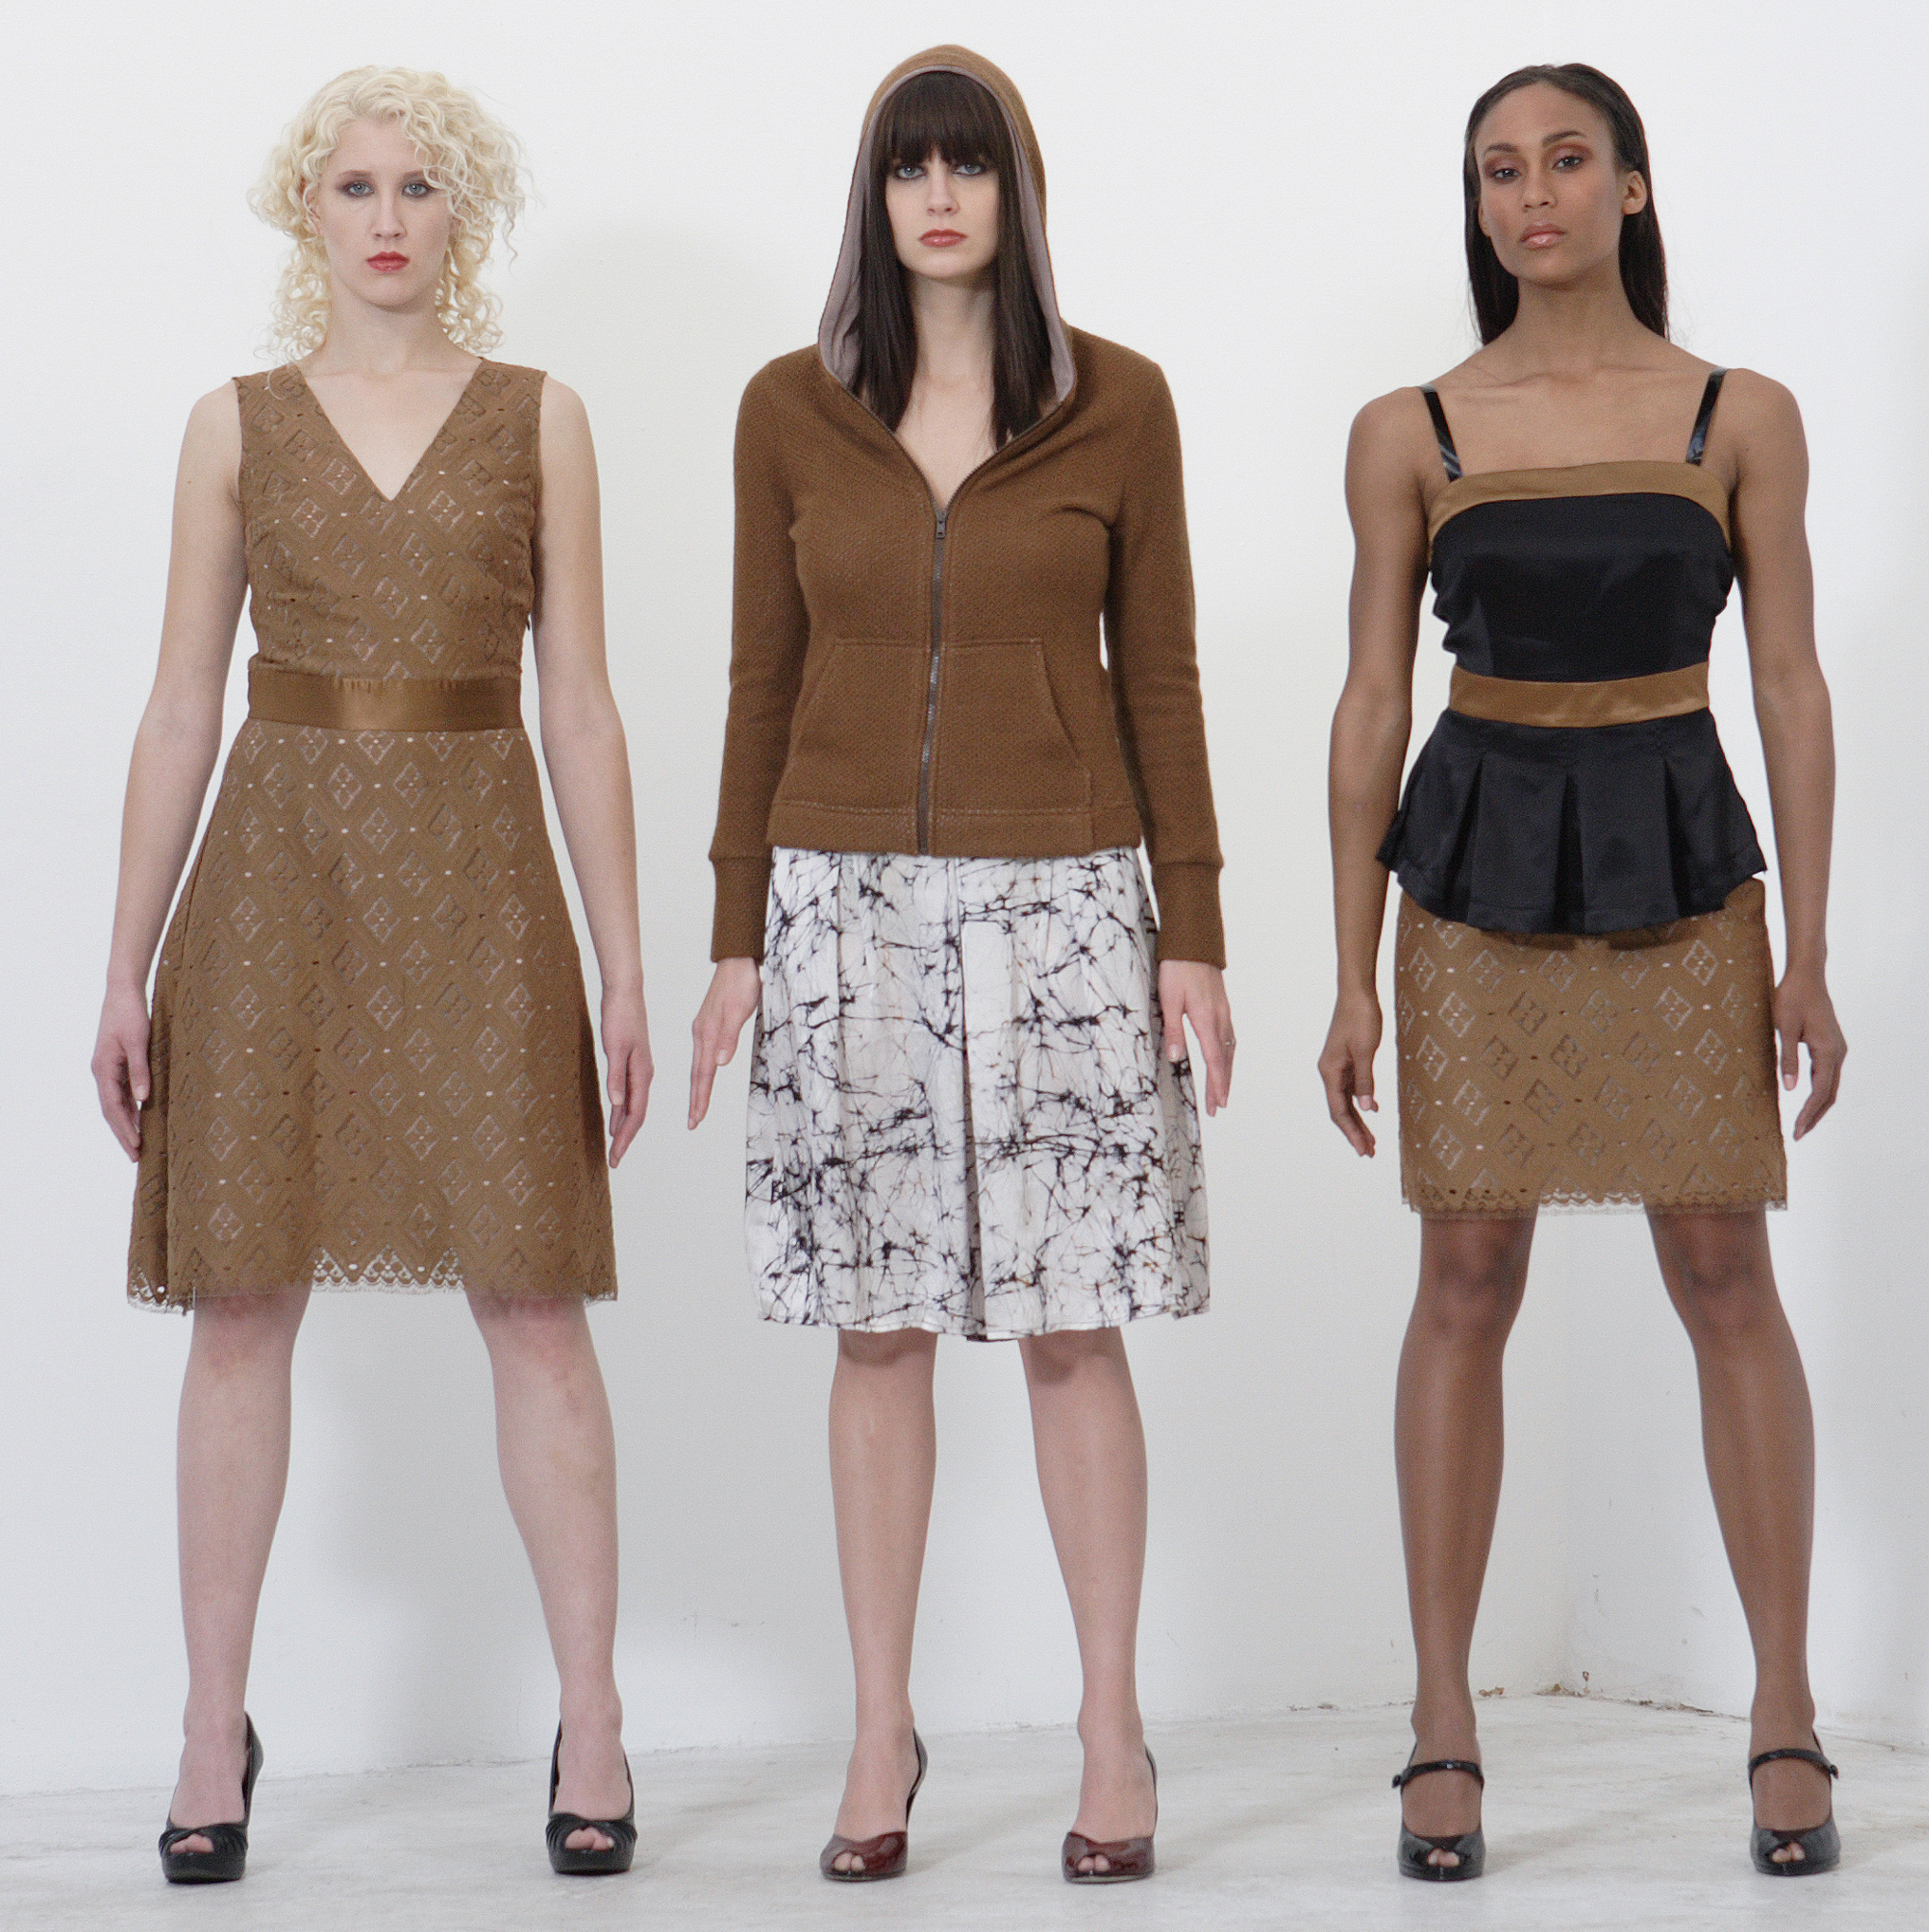 French Lace V-Neck Dress Lined in Silk.   Center:   Woll Cashmere Zip HoodSweater.  Web Print Silk Charmeuse High Waist Pleat Skirt.                             On Right:          Silk Charmeuse Pleat Cami Top w/ Patent Straps.  French Lace & Silk Mini w/ Quilt Stitch Waist.